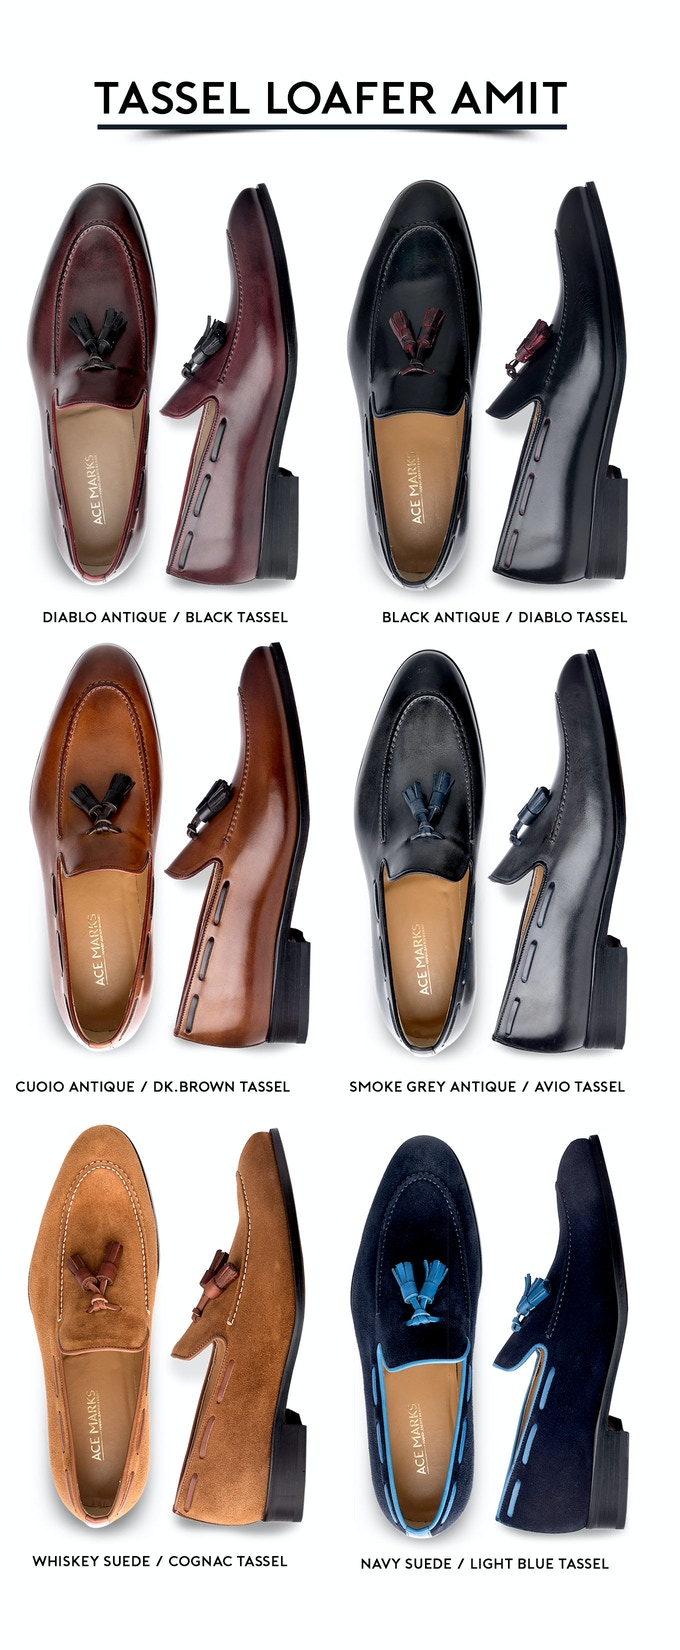 Handcrafted Dress Shoes Reinvented For The Modern Gentleman By Ace D Island Casual Zappato England Suede Dark Brown Amit Goes Great With Khakis Jeans And Right Attitude Even A Suit Rendered In Richly Oiled Leathers Furnished Traditional